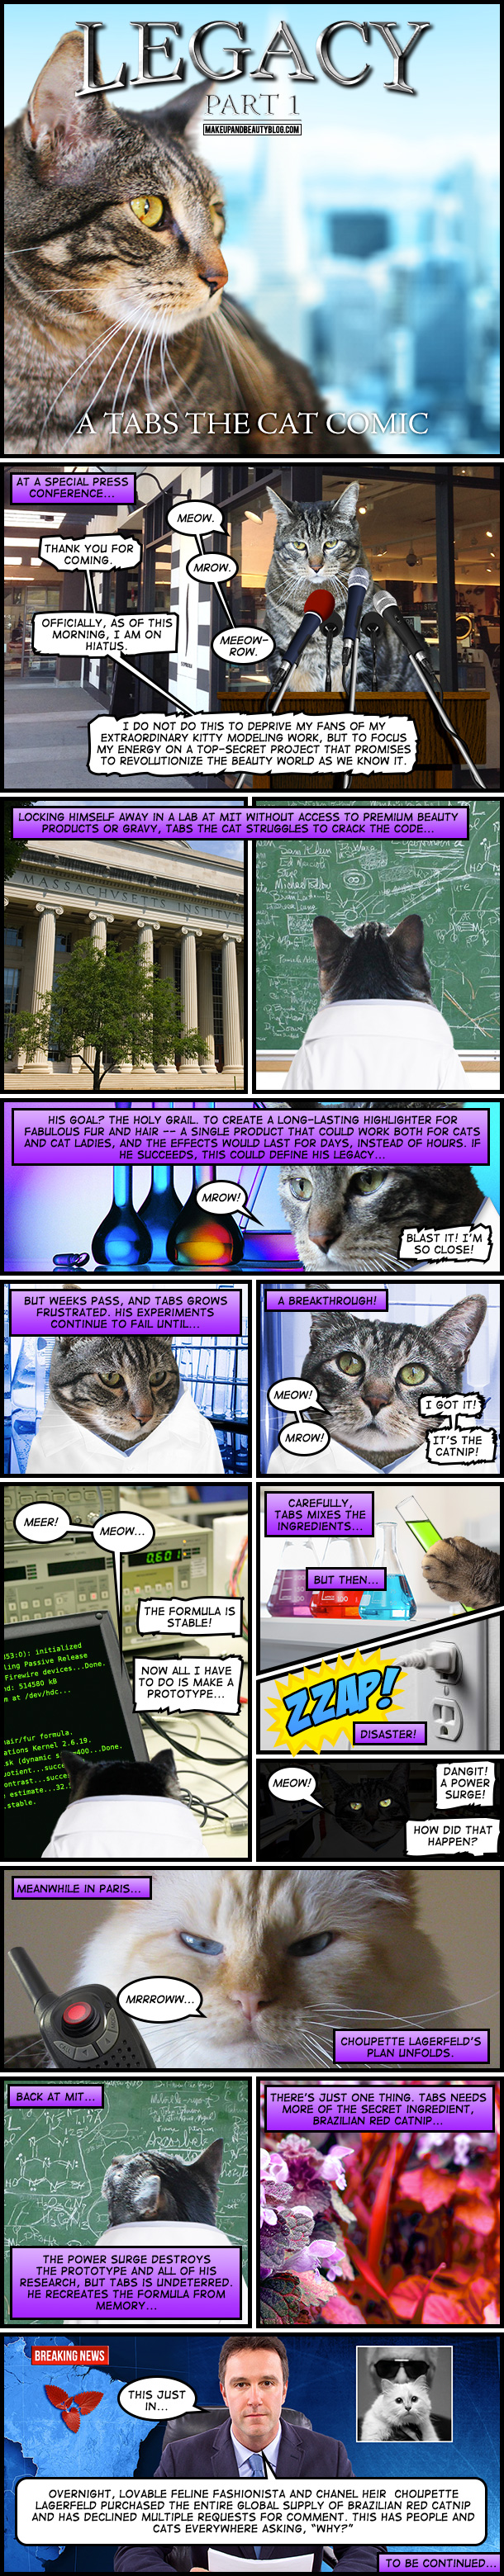 Legacy: A Tabs the Cat Comic